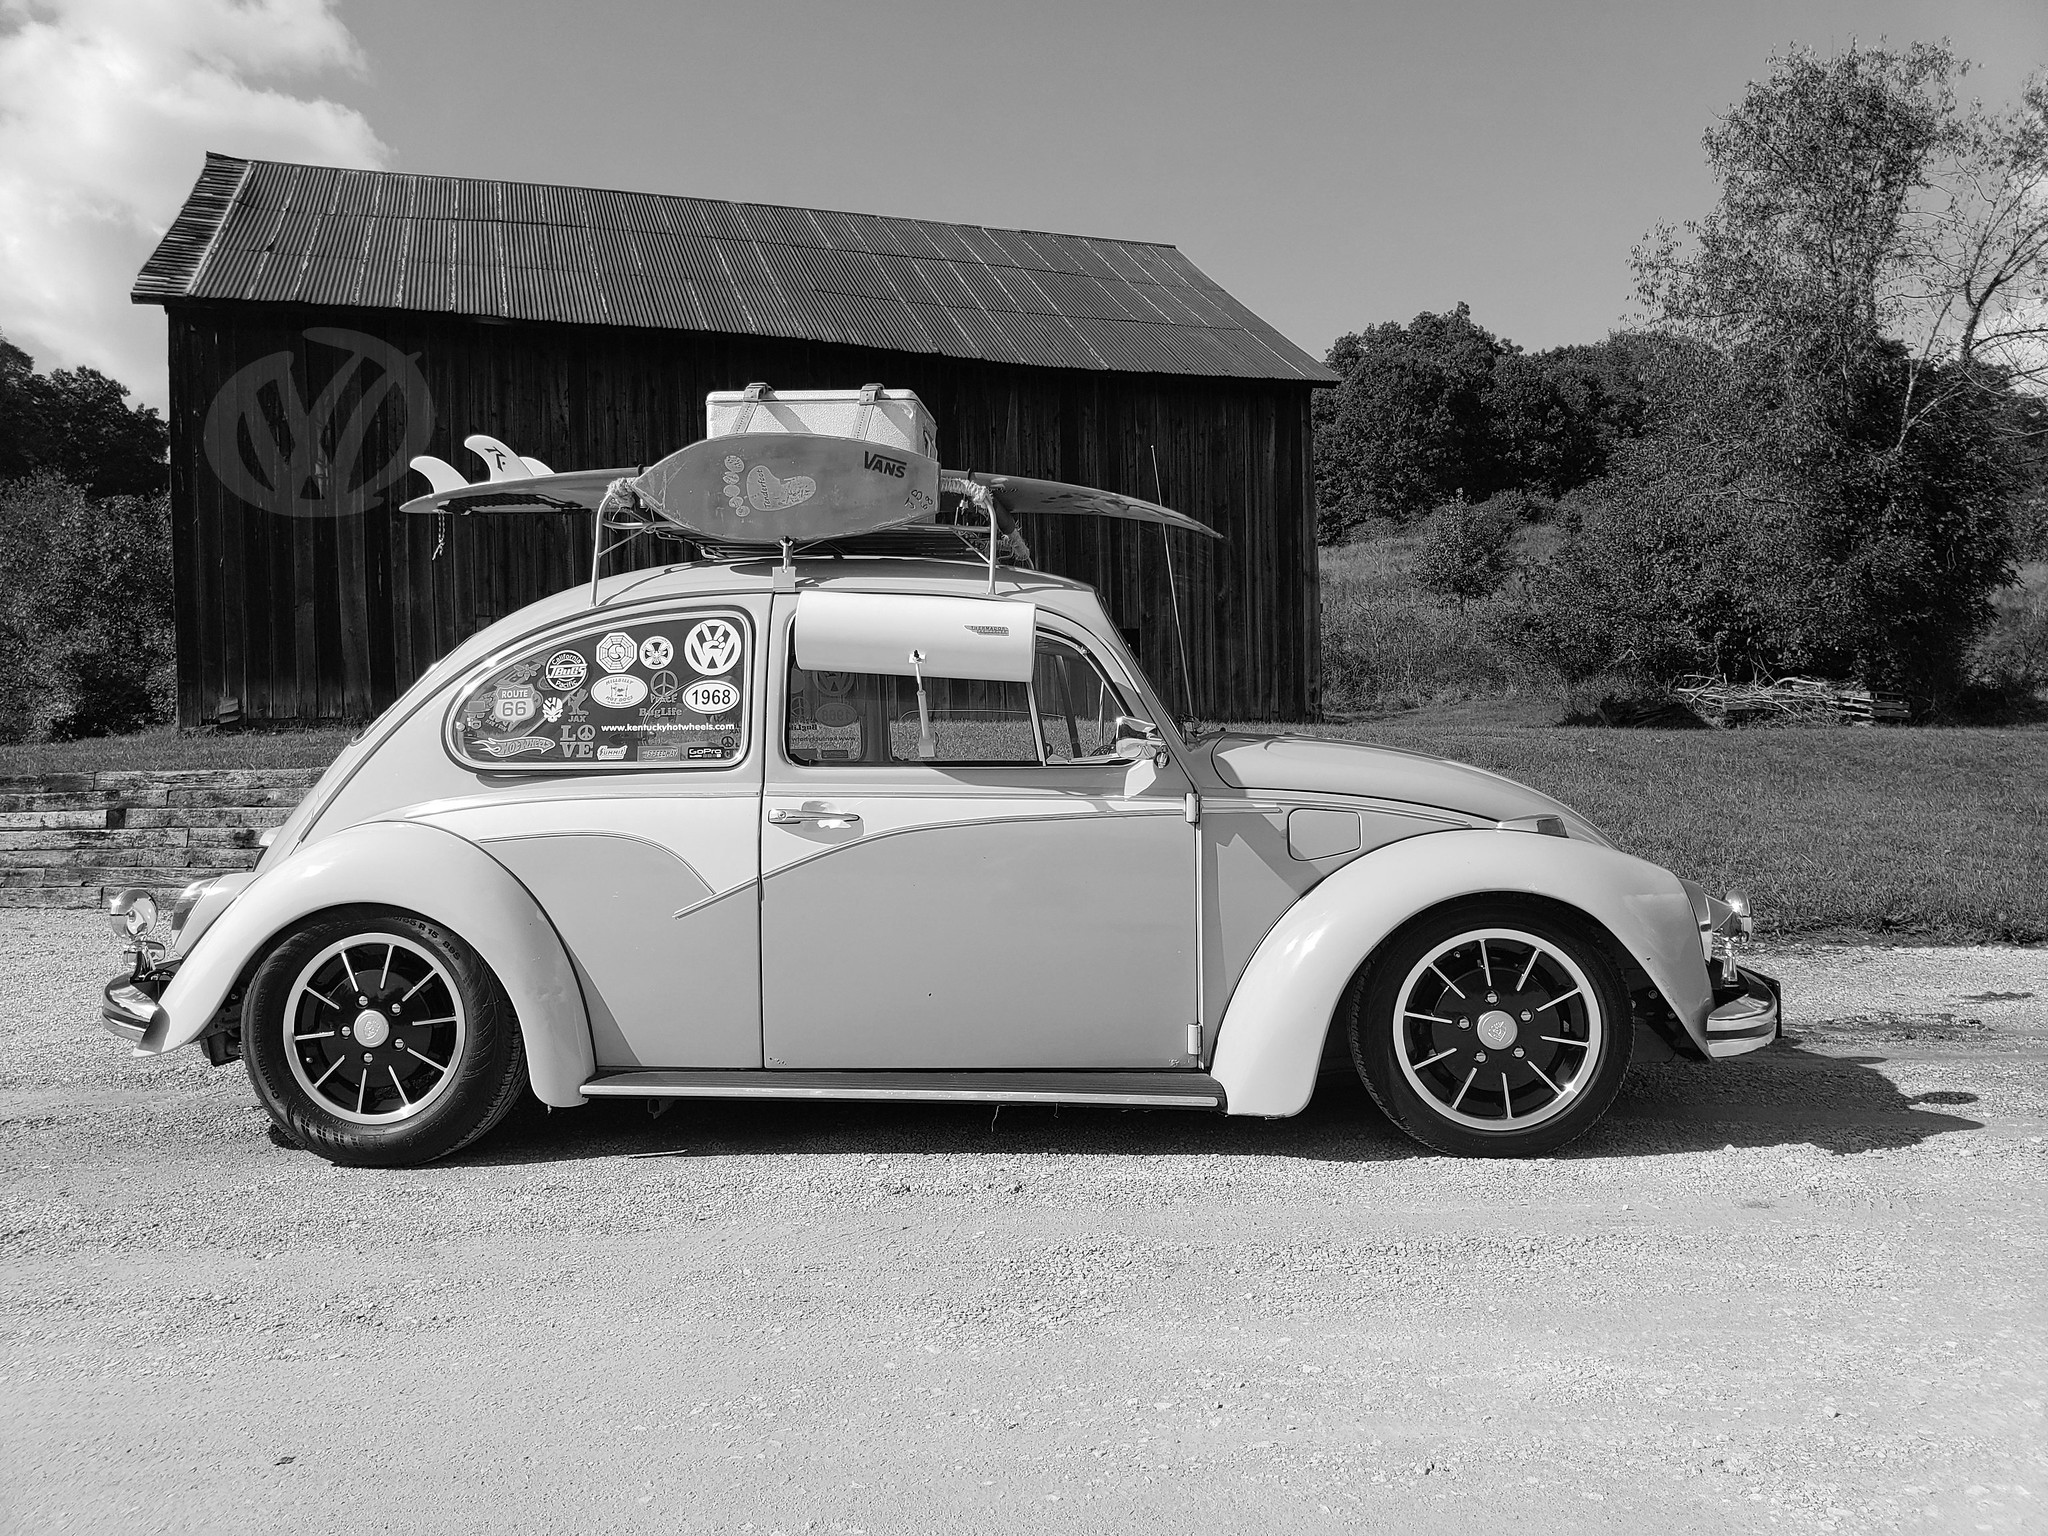 House Of Boyd Page 3 Living Life One Day At A Time 1963 Volkswagen Beetle Wiring Harness Vw Desktop Wallpaper